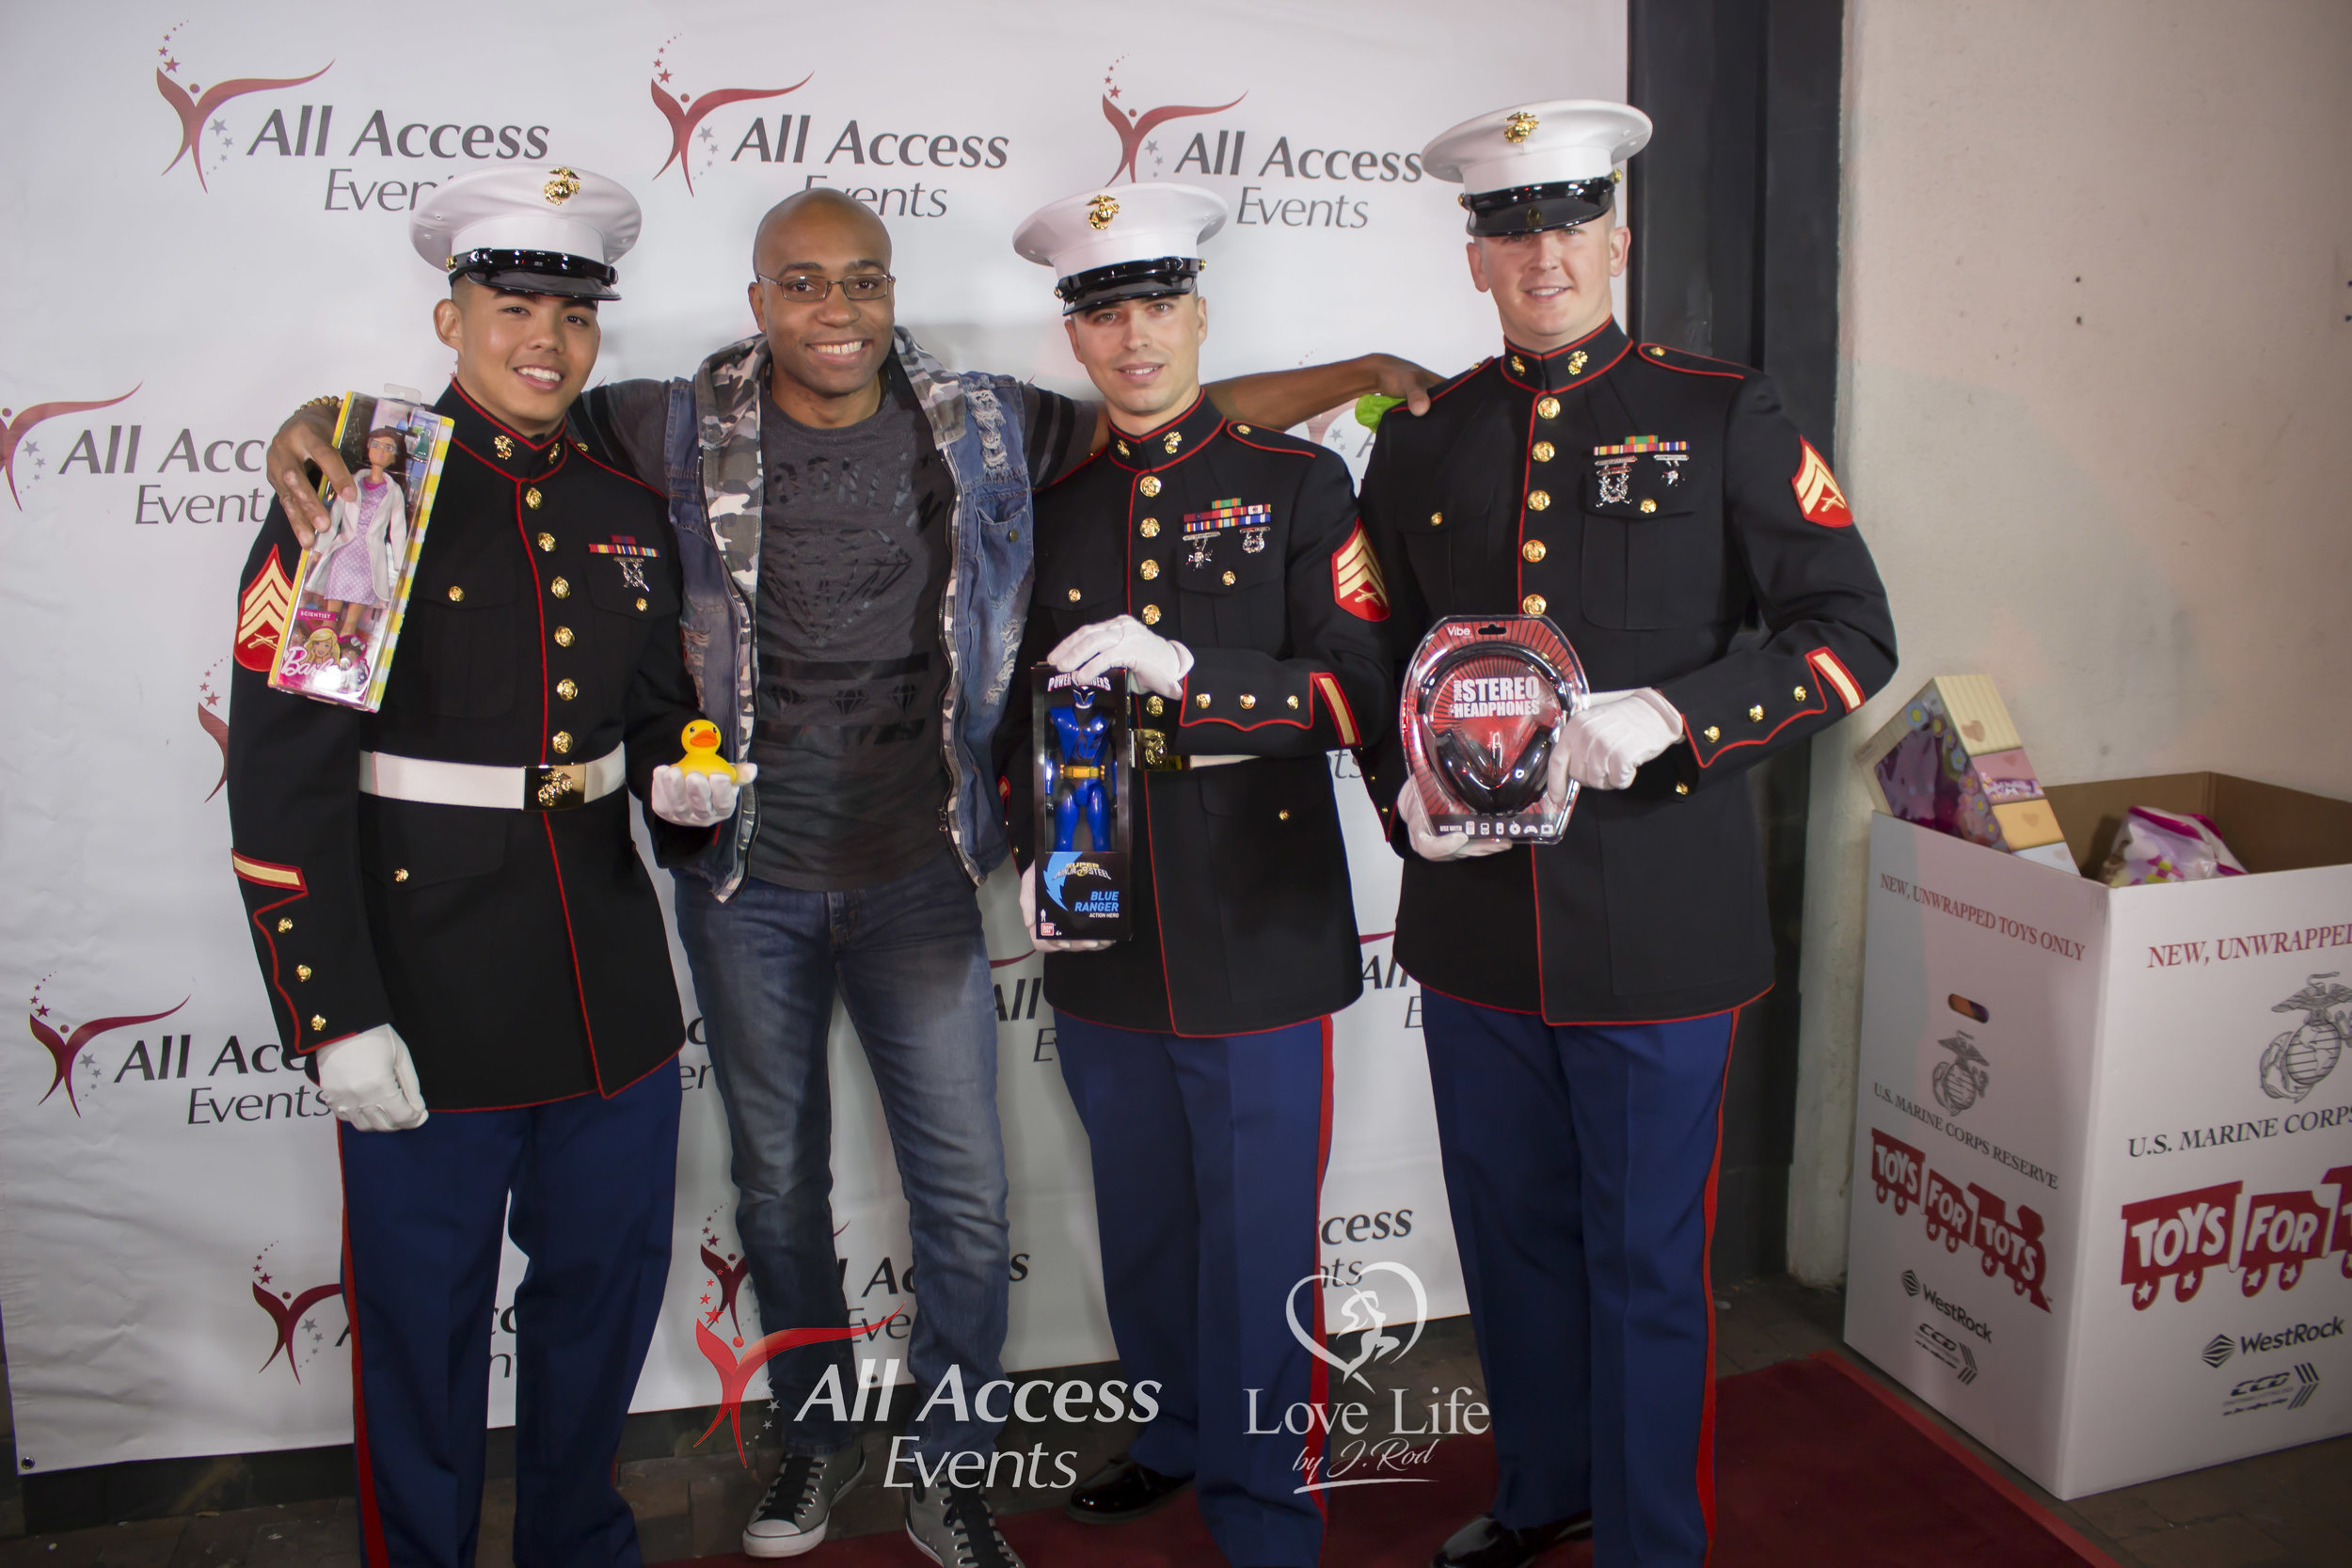 All Access Events Toy Drive - 12-13-17_211.jpg